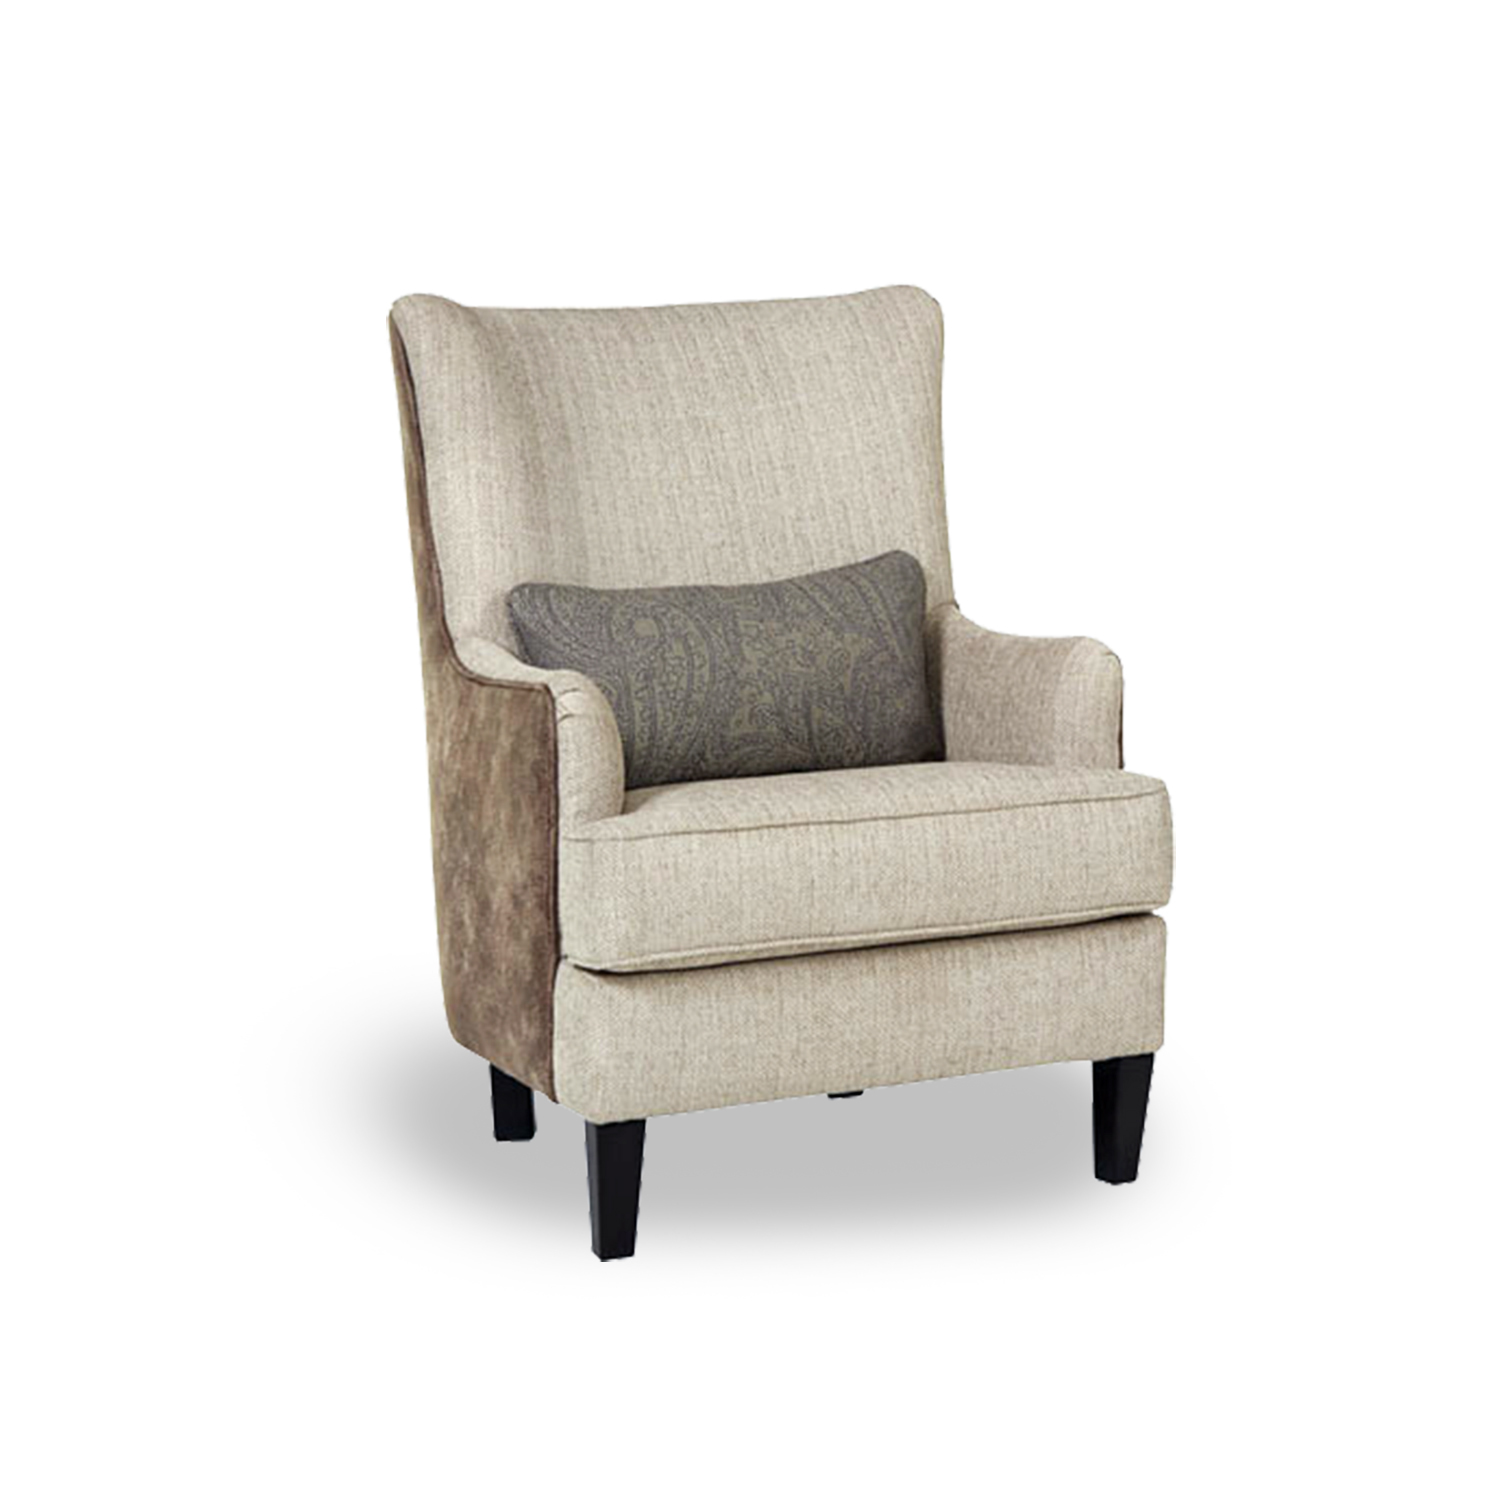 accent chair 4110121.jpg